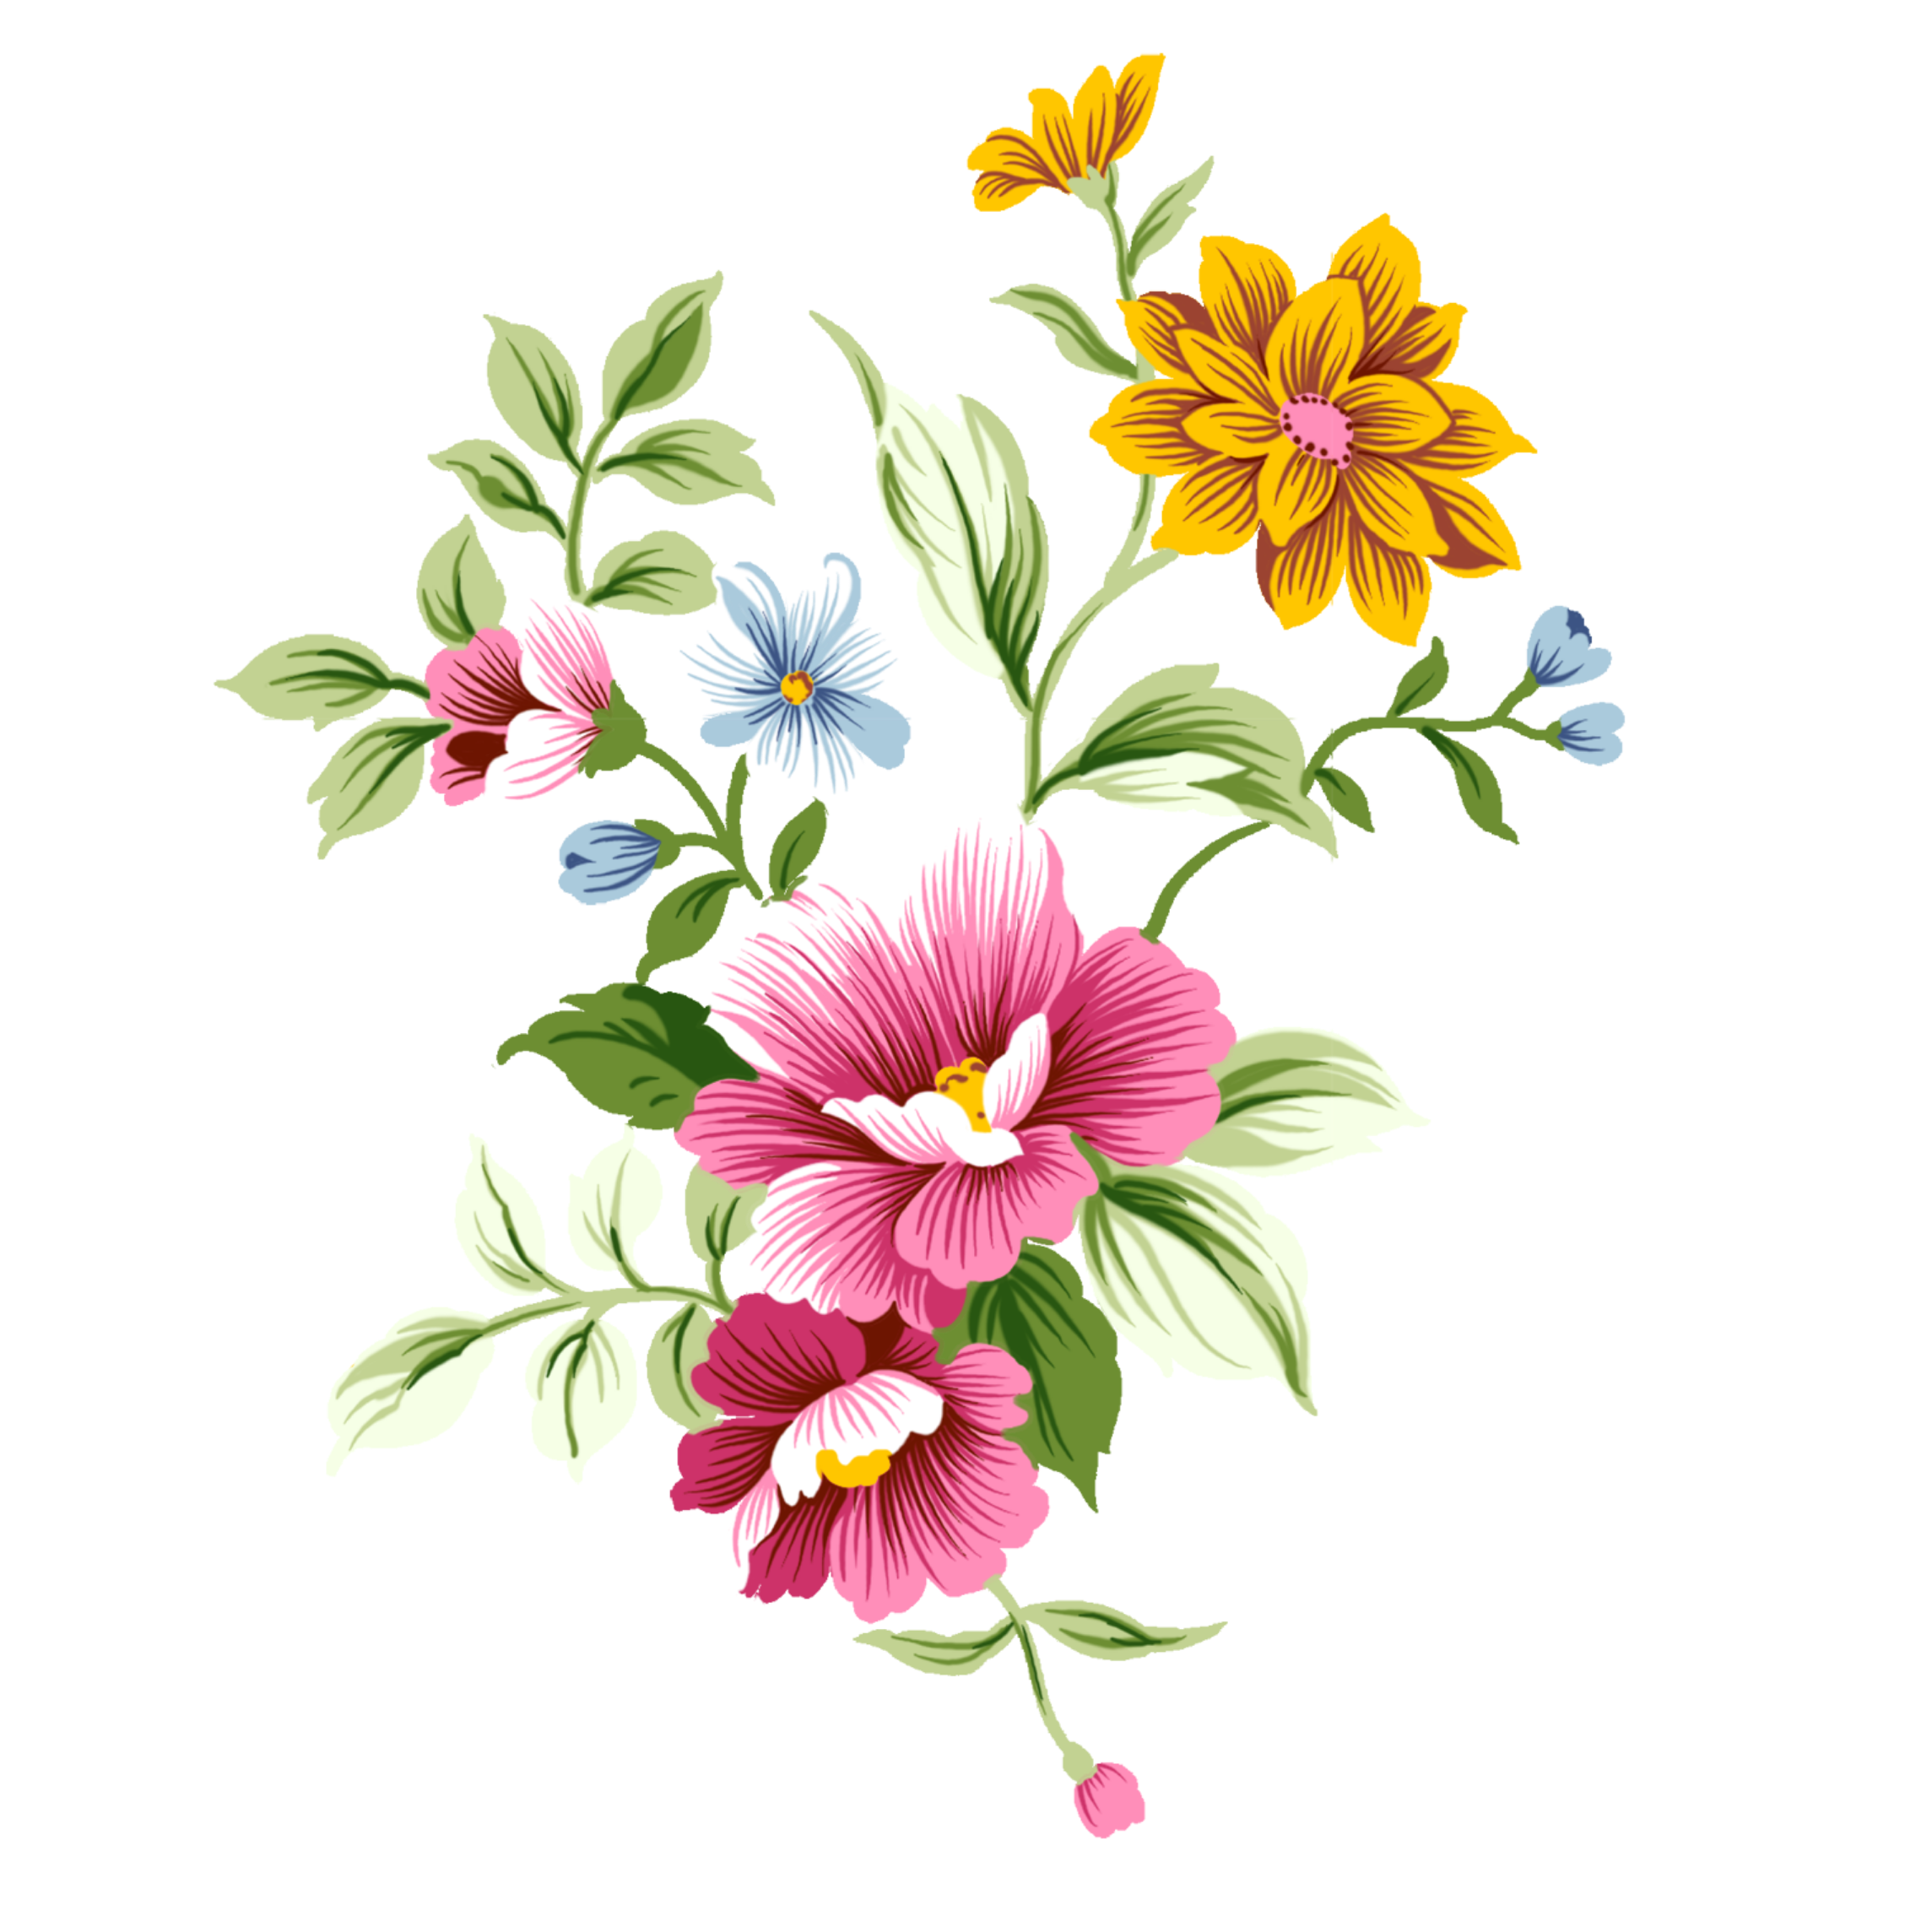 Discover The Coolest Flowers Decor Sprine Primavera Tumblr Collage Perfect Colorful Nuture Sticker Perf Pretty Flower Art Flower Art Flower Painting